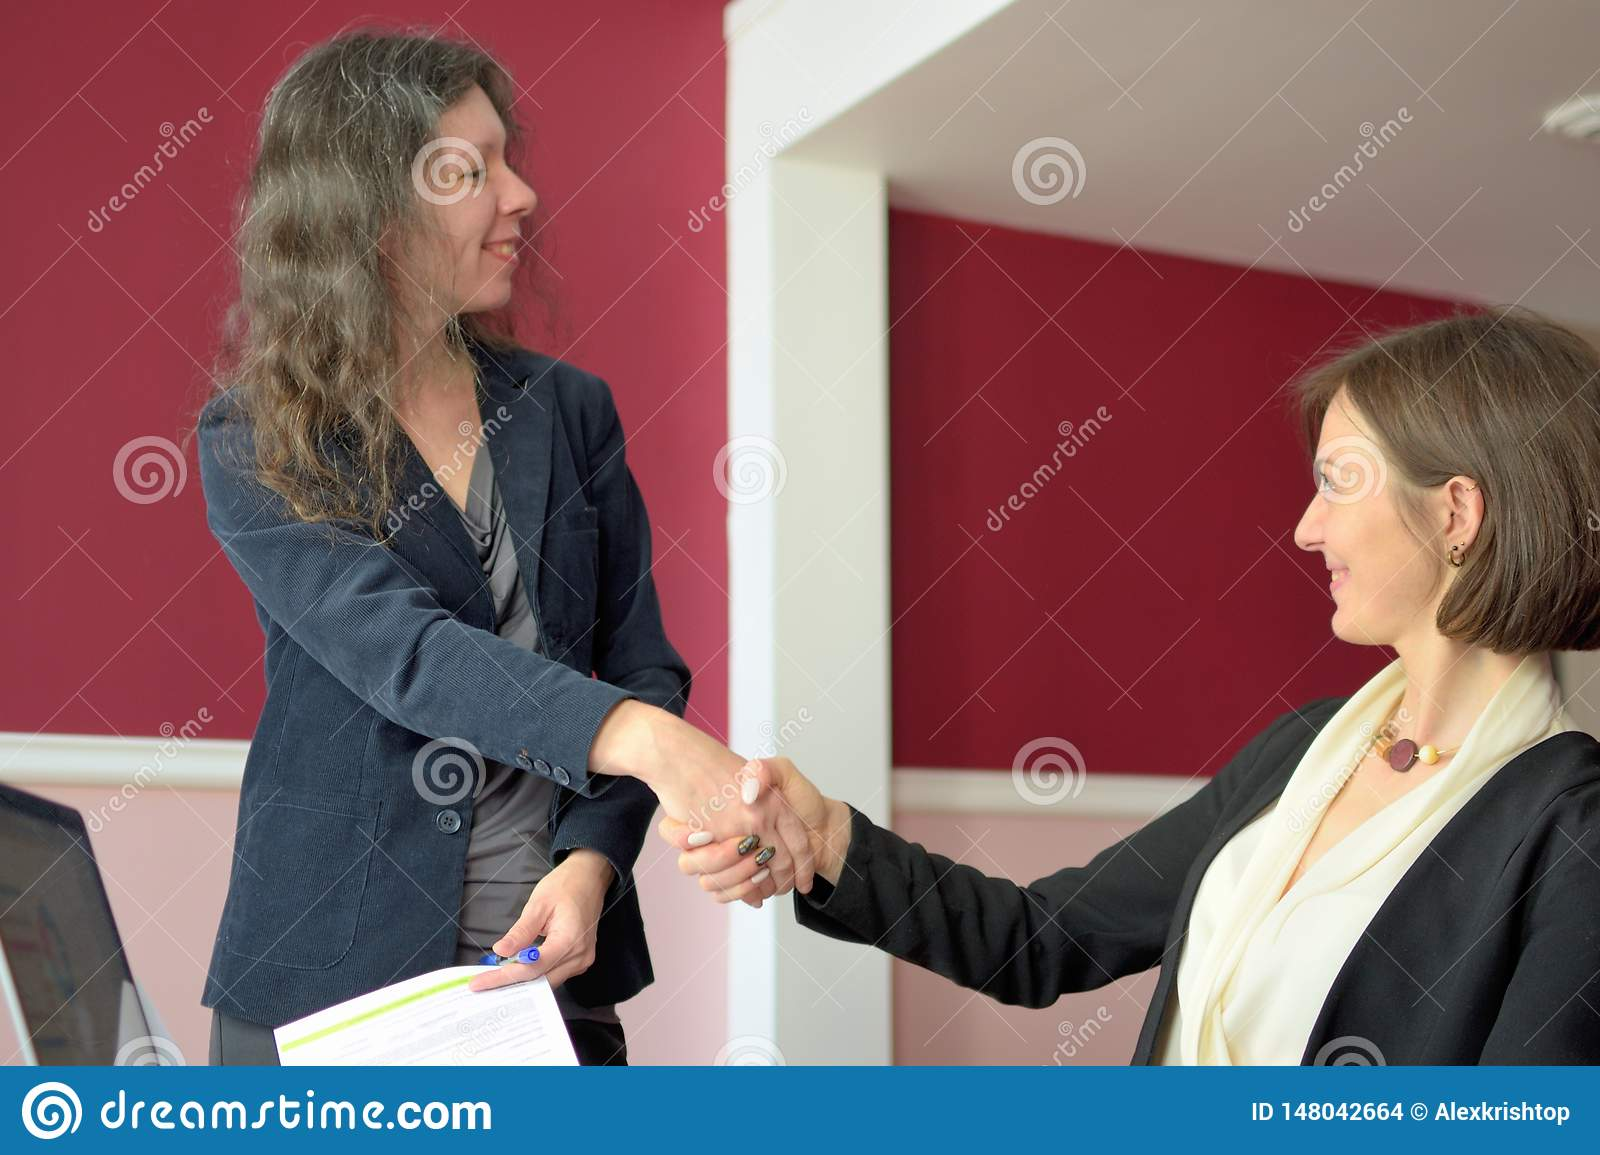 Young smartly dressed lady helps another young lady to work with documents, fill forms and sign